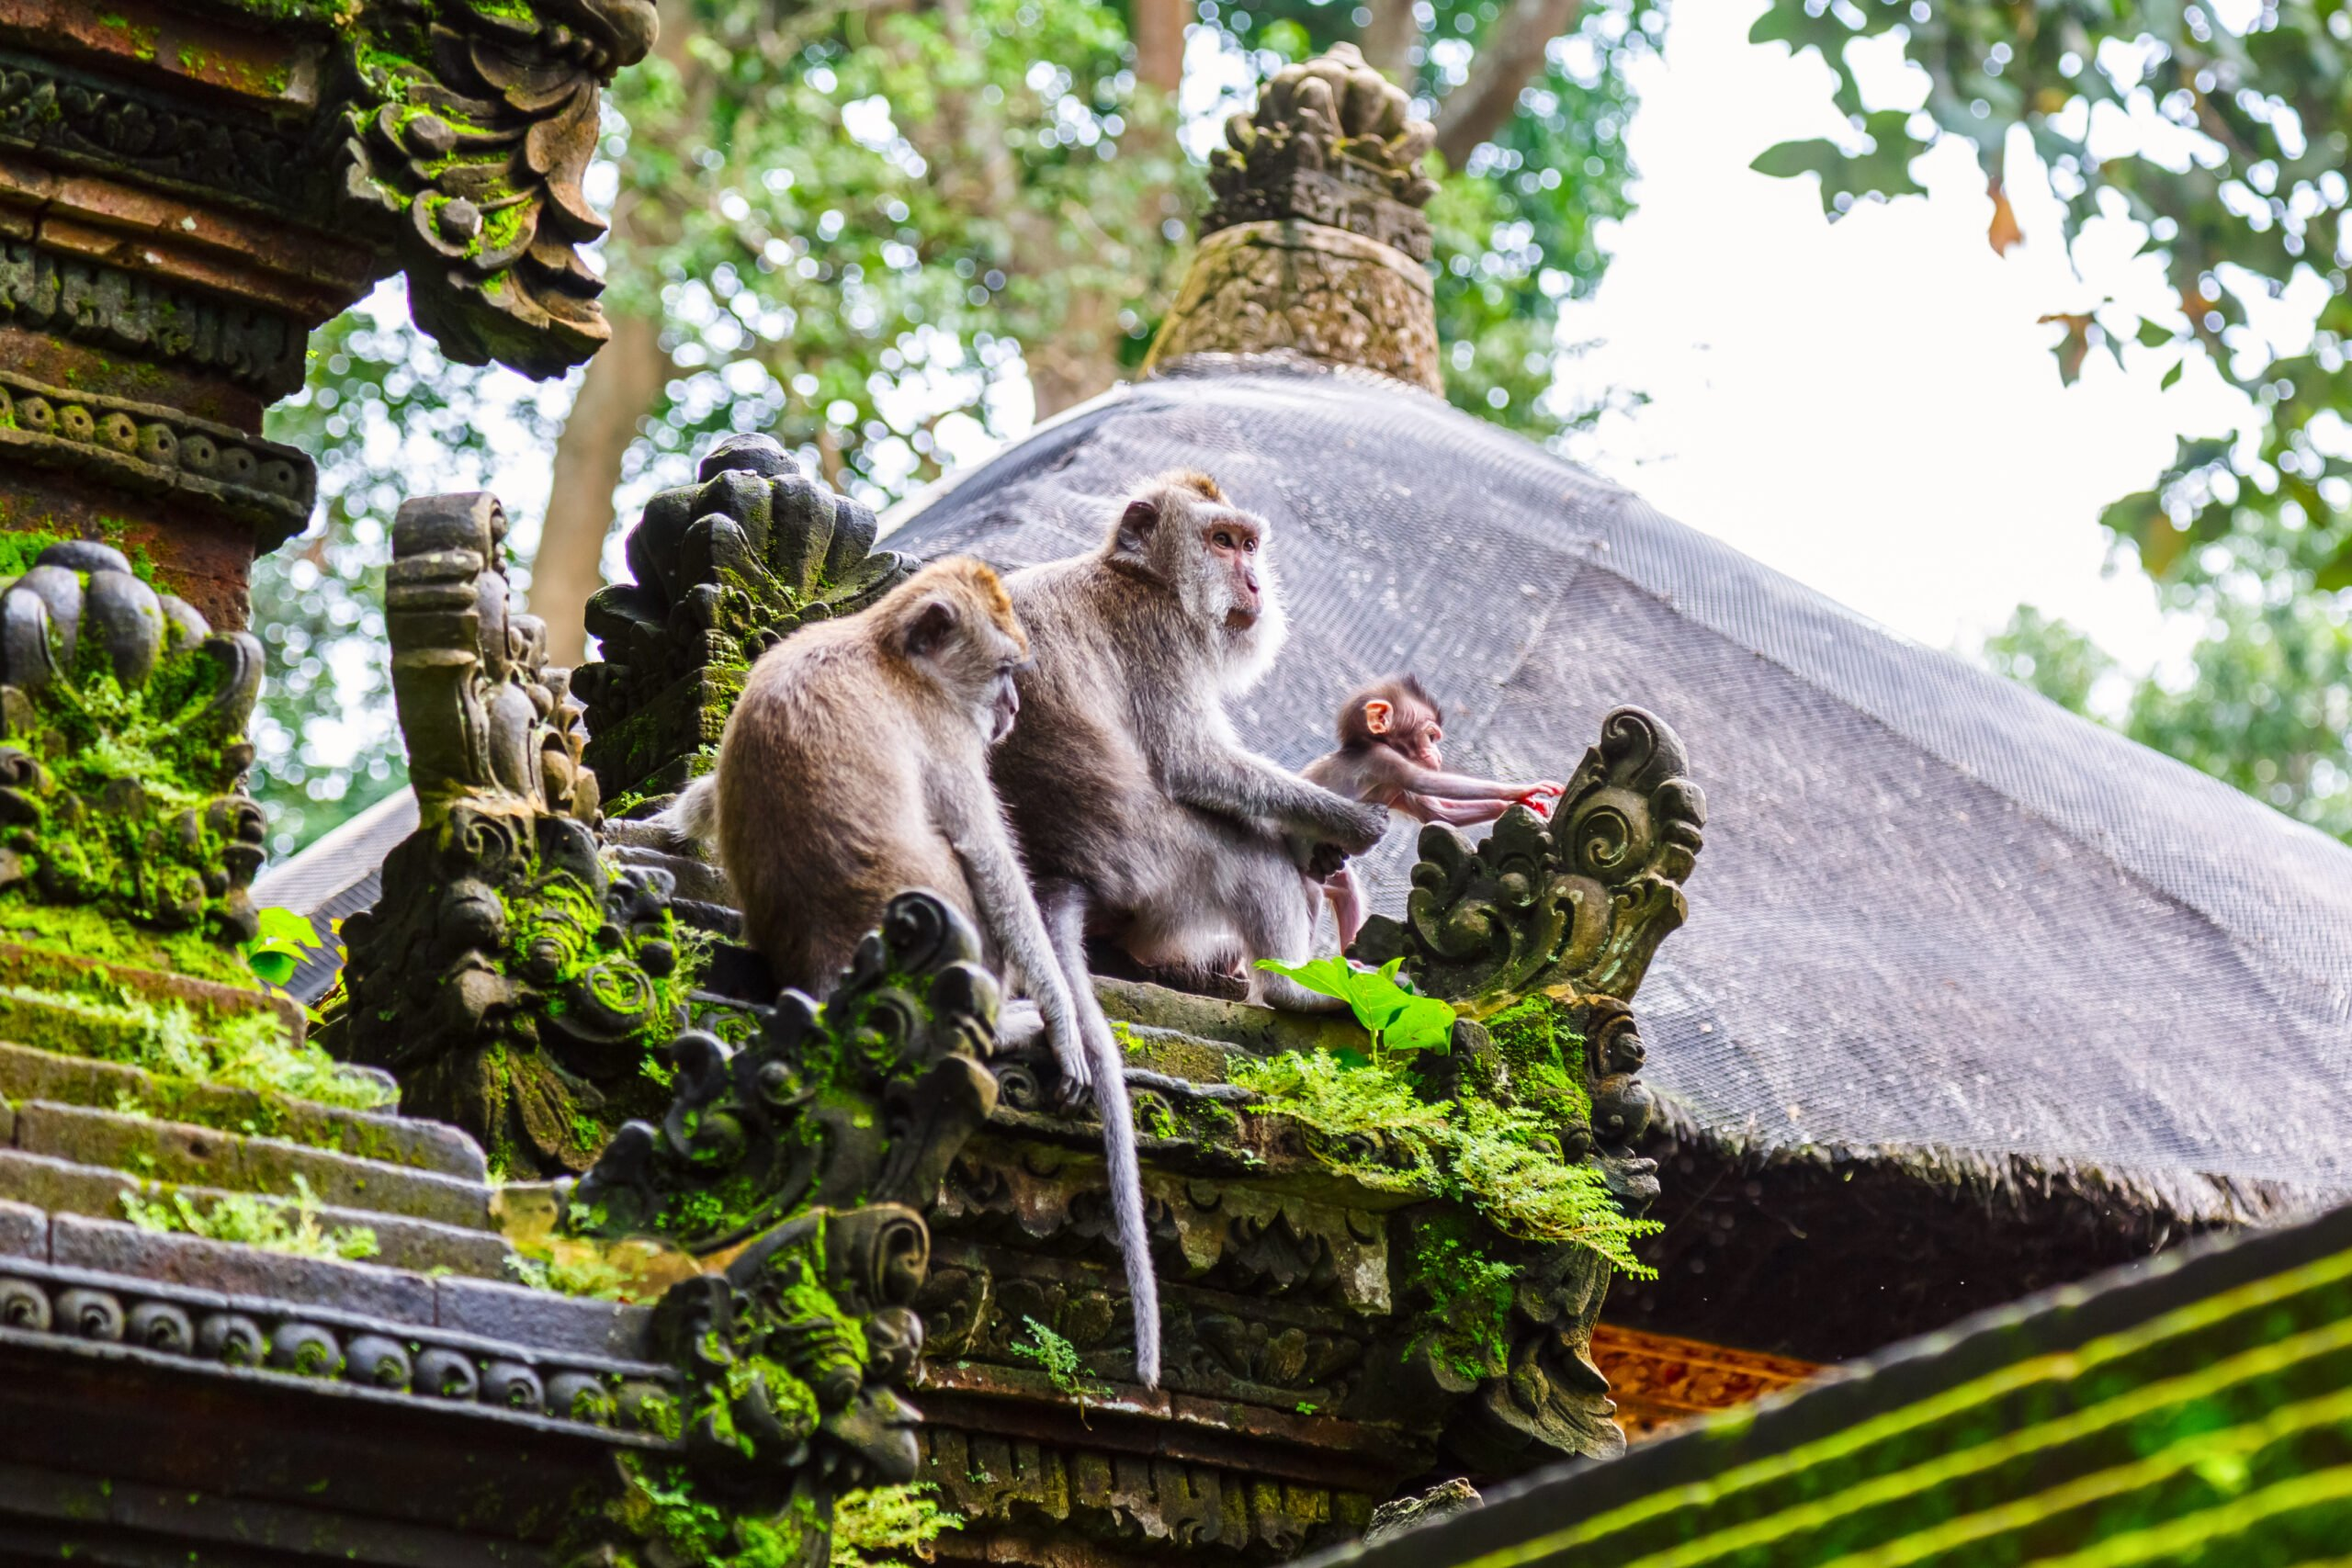 Discover The Temples In The Monkey Forest On The Balinese Local Homestay Experience In Bresela Village